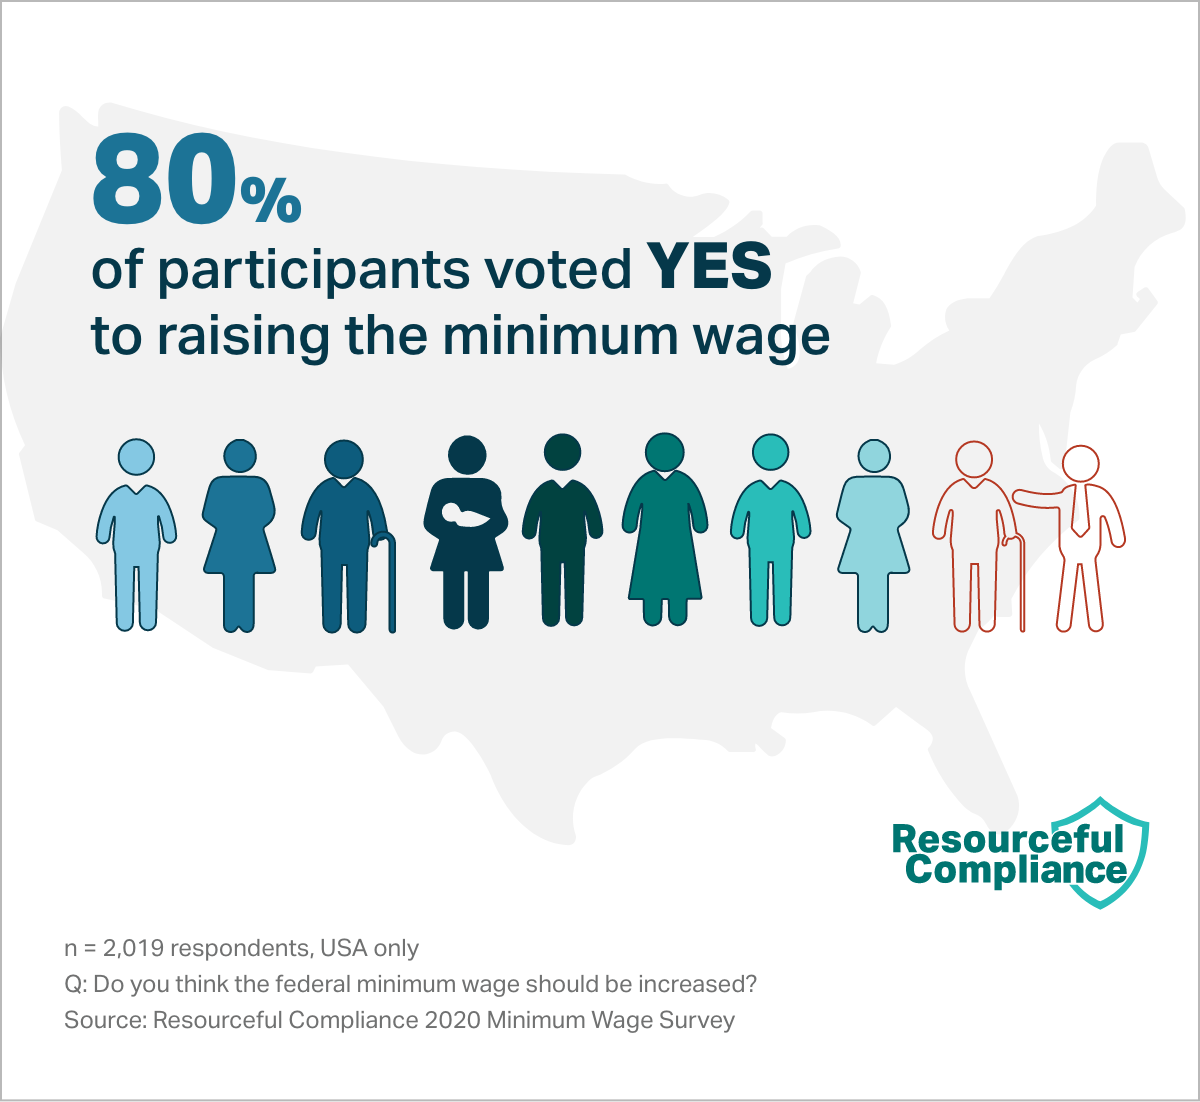 80% of participants voted YES to raising the minimum wage